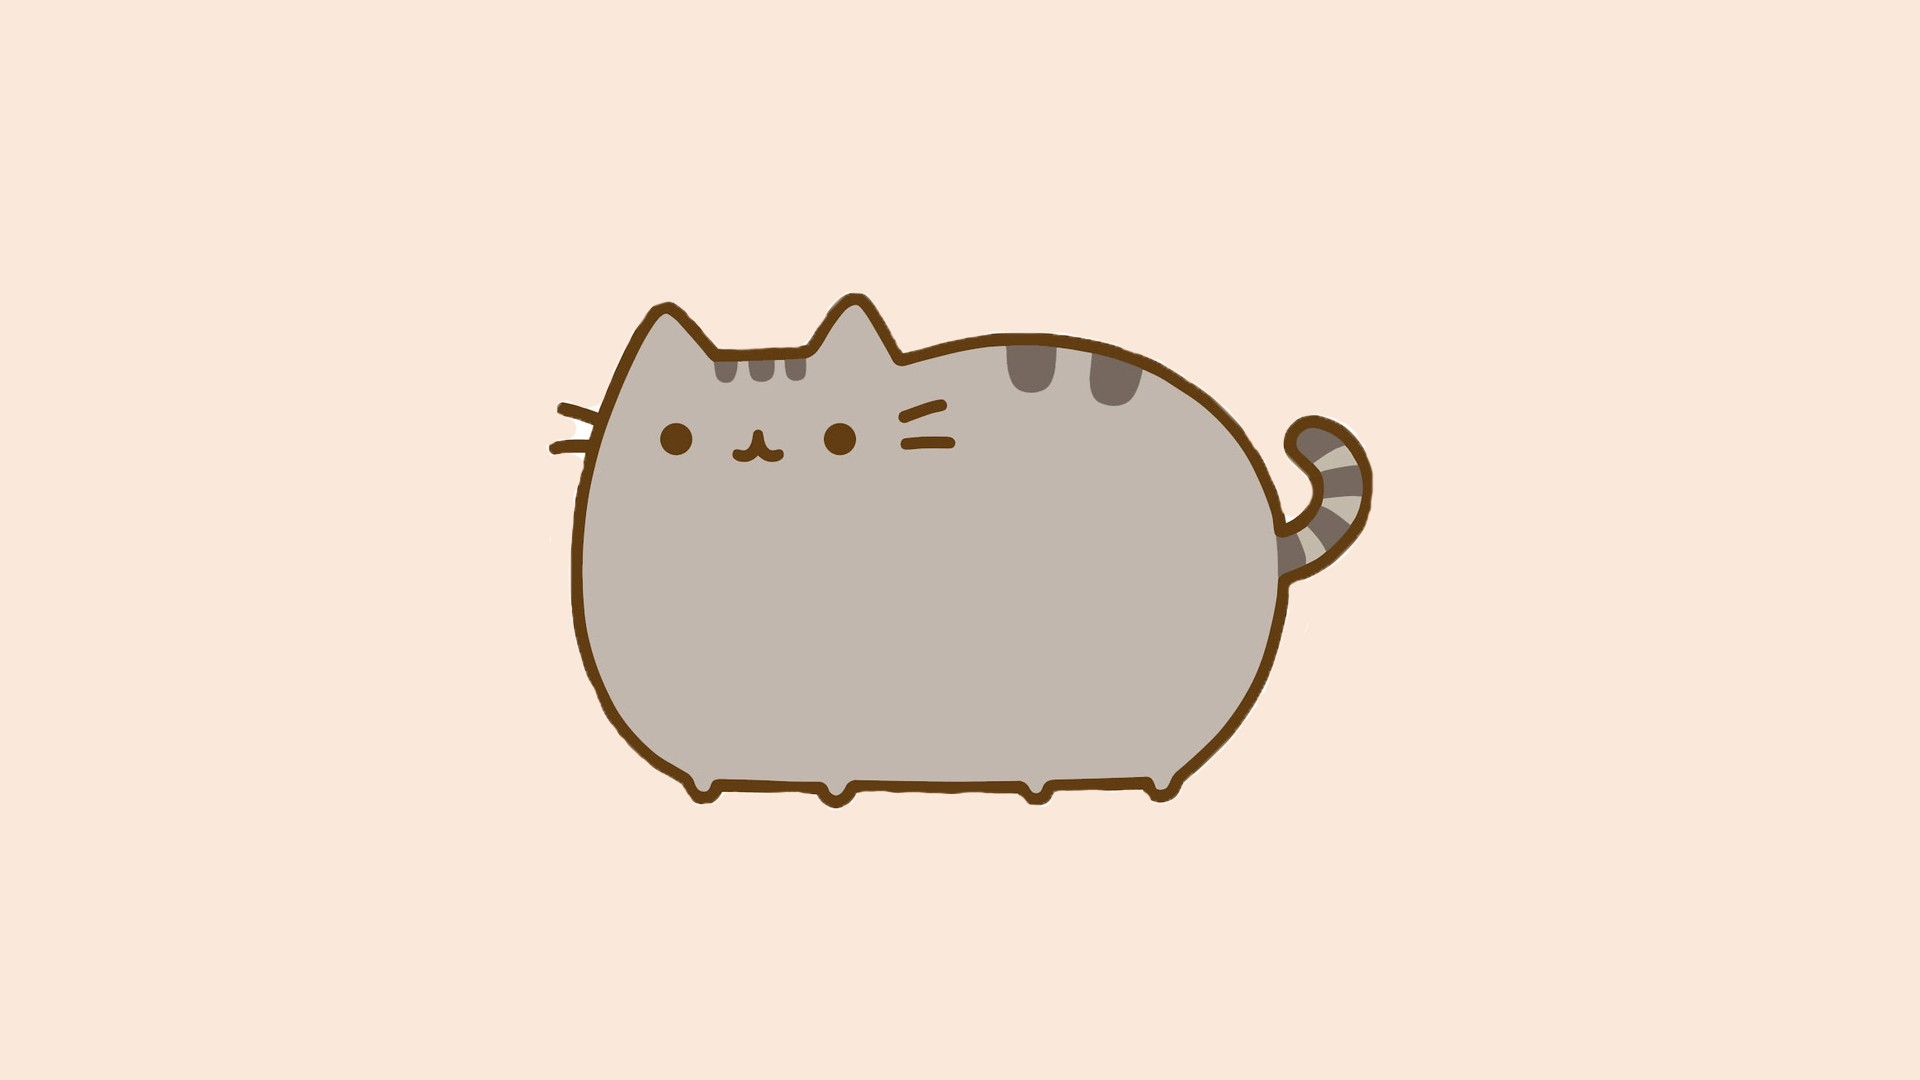 Wallpaper : drawing, illustration, cat, minimalism, artwork.